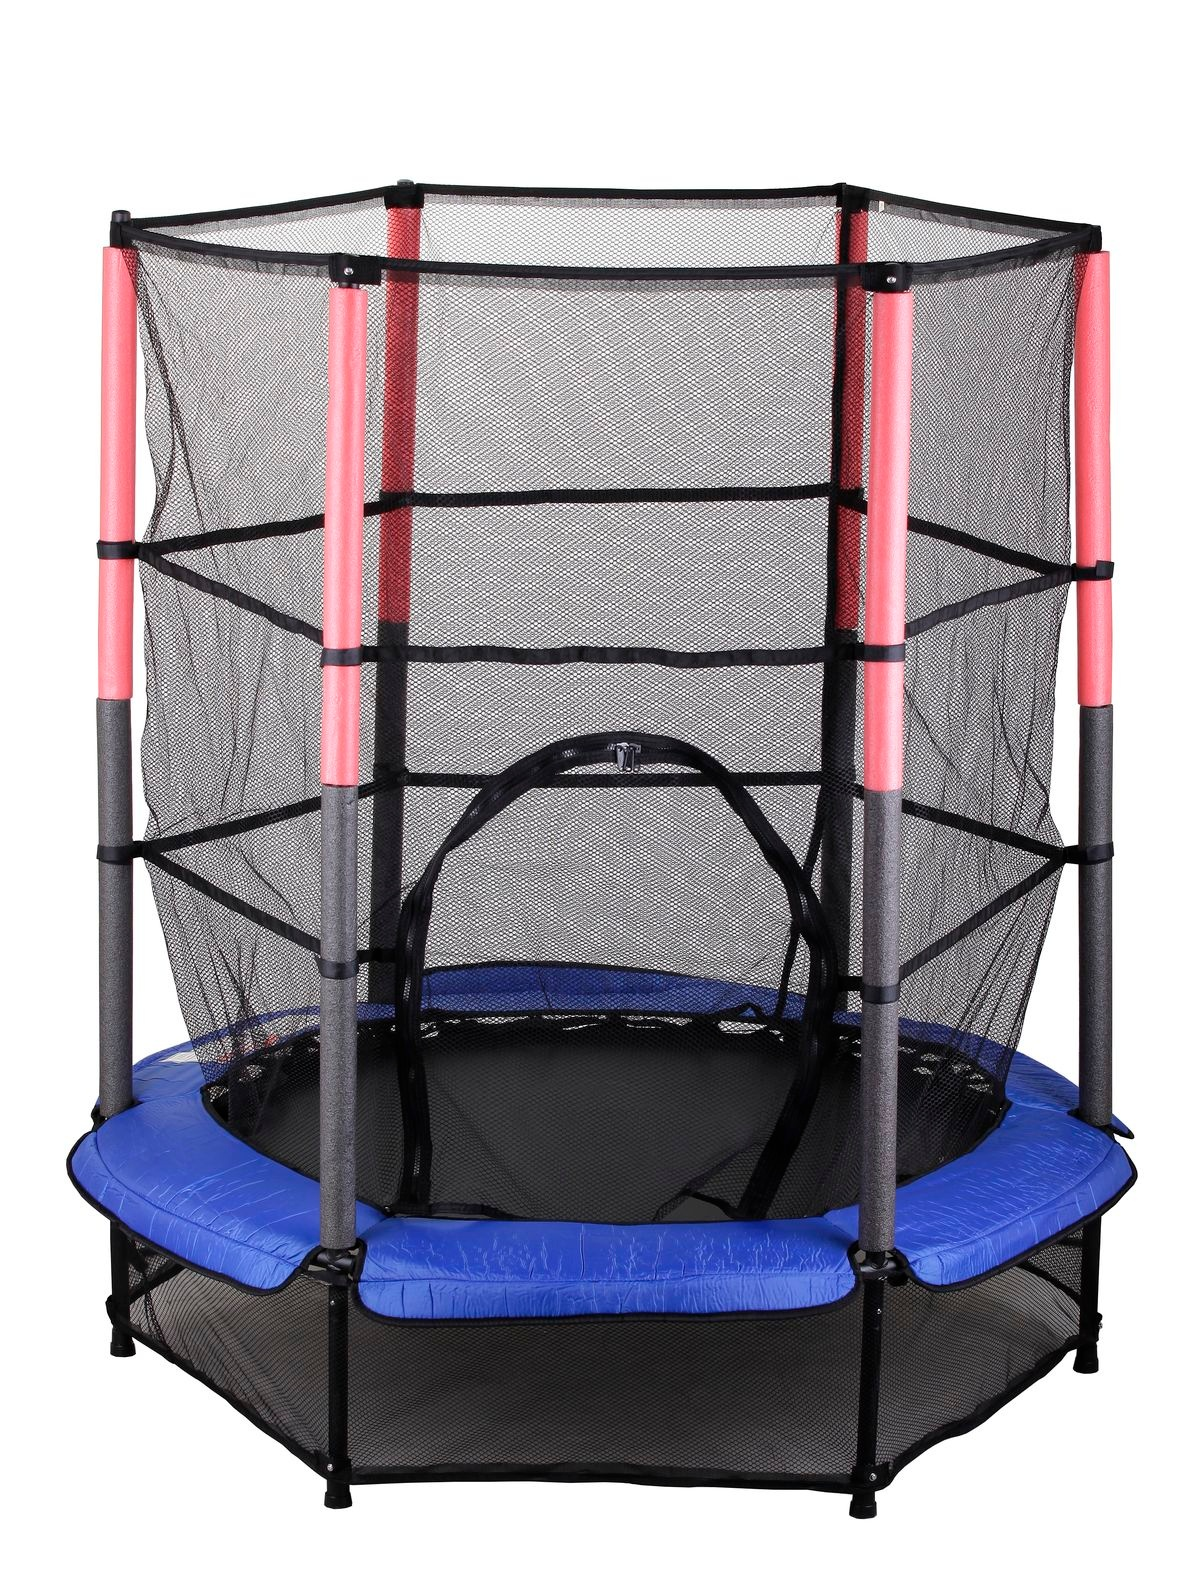 kinder trampolin 140cm indoor outdoor gartentrampolin f r kinder ebay. Black Bedroom Furniture Sets. Home Design Ideas